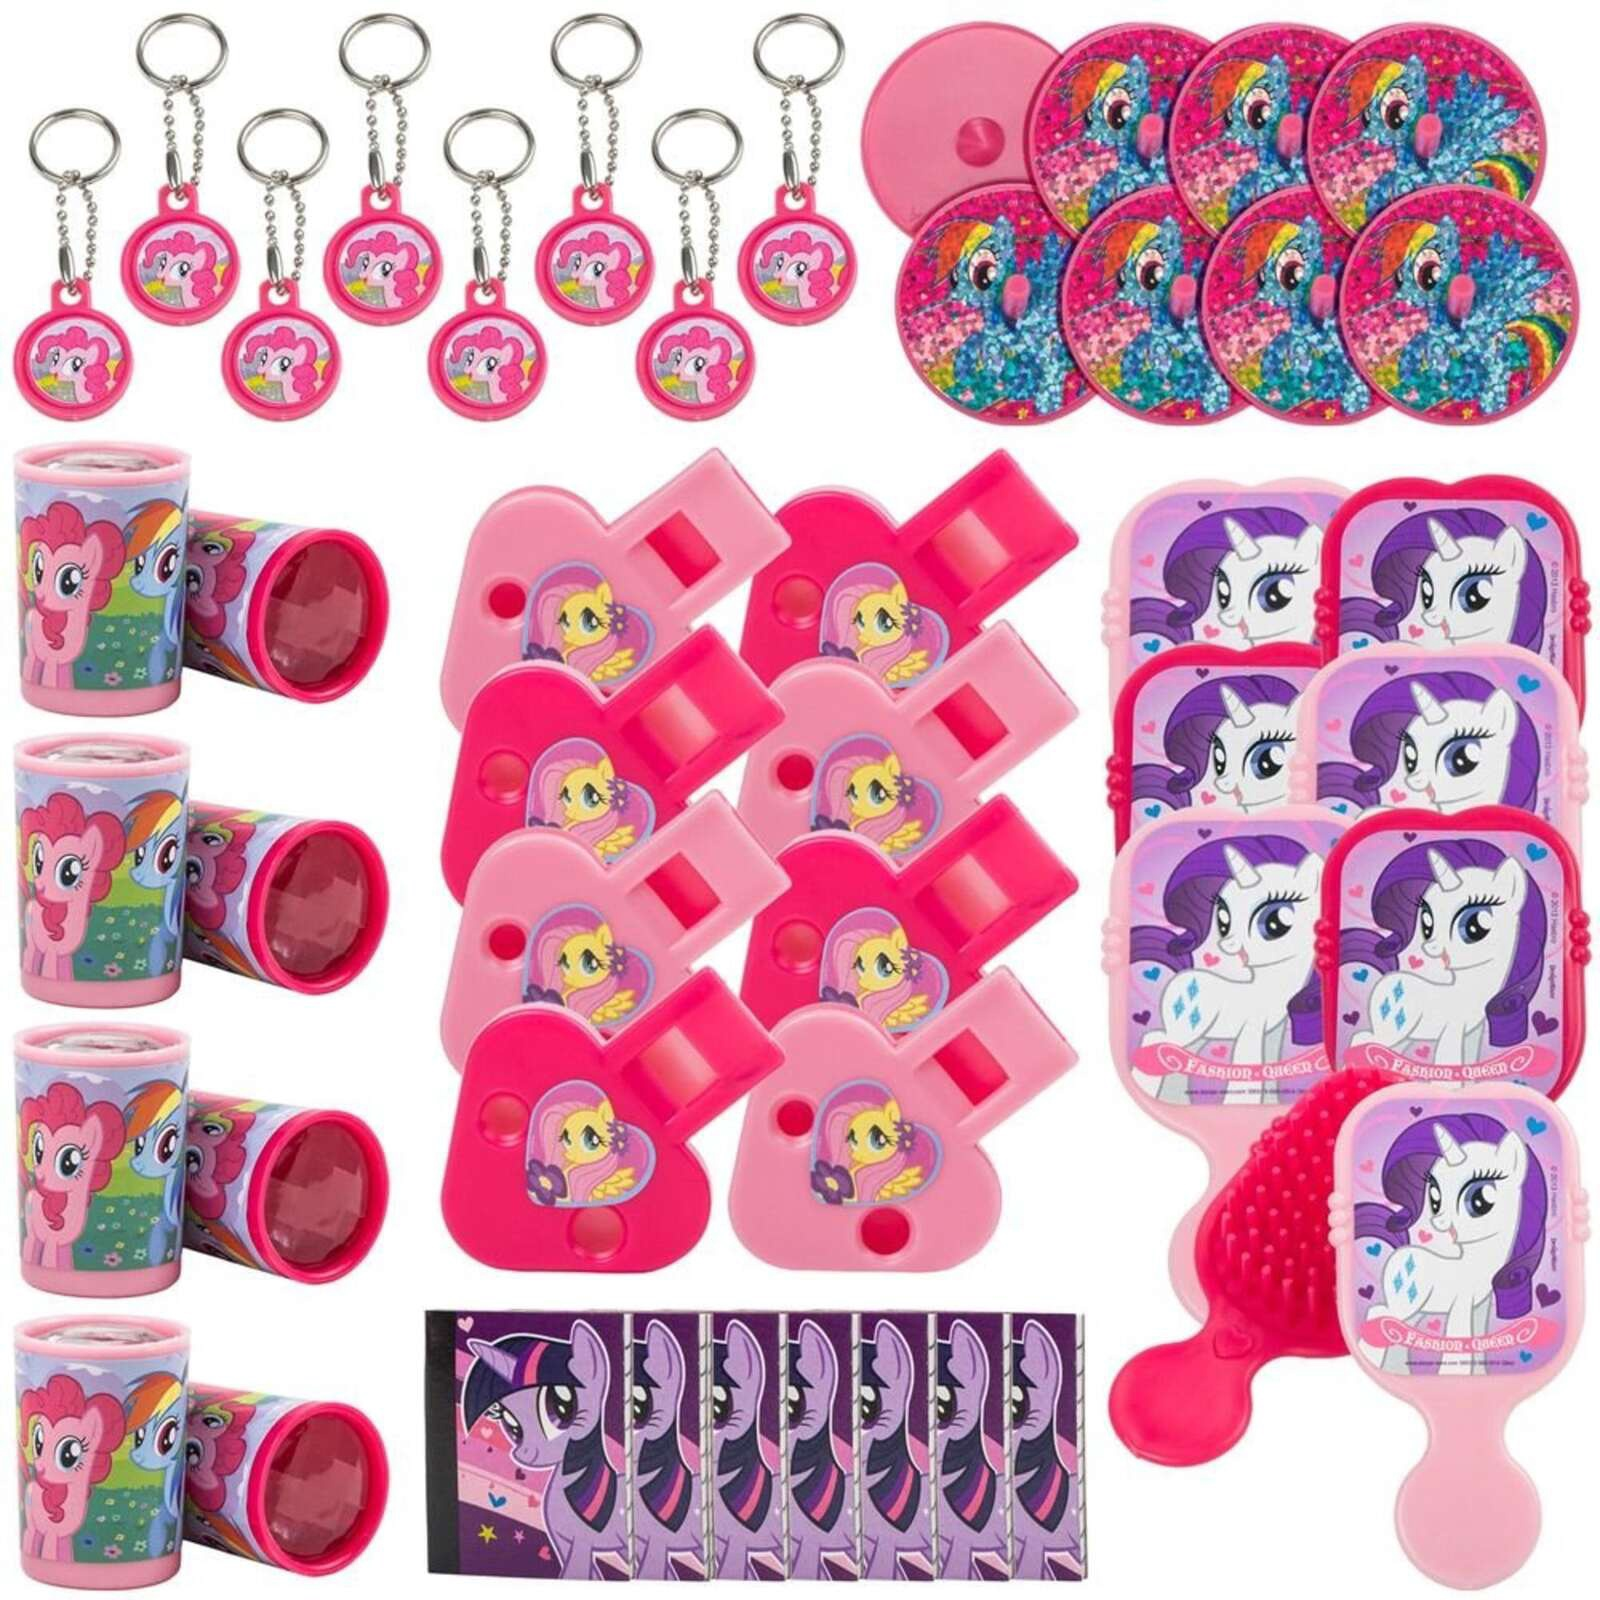 MY LITTLE PONY MEGA MIX VALUE PACK 48 PCS